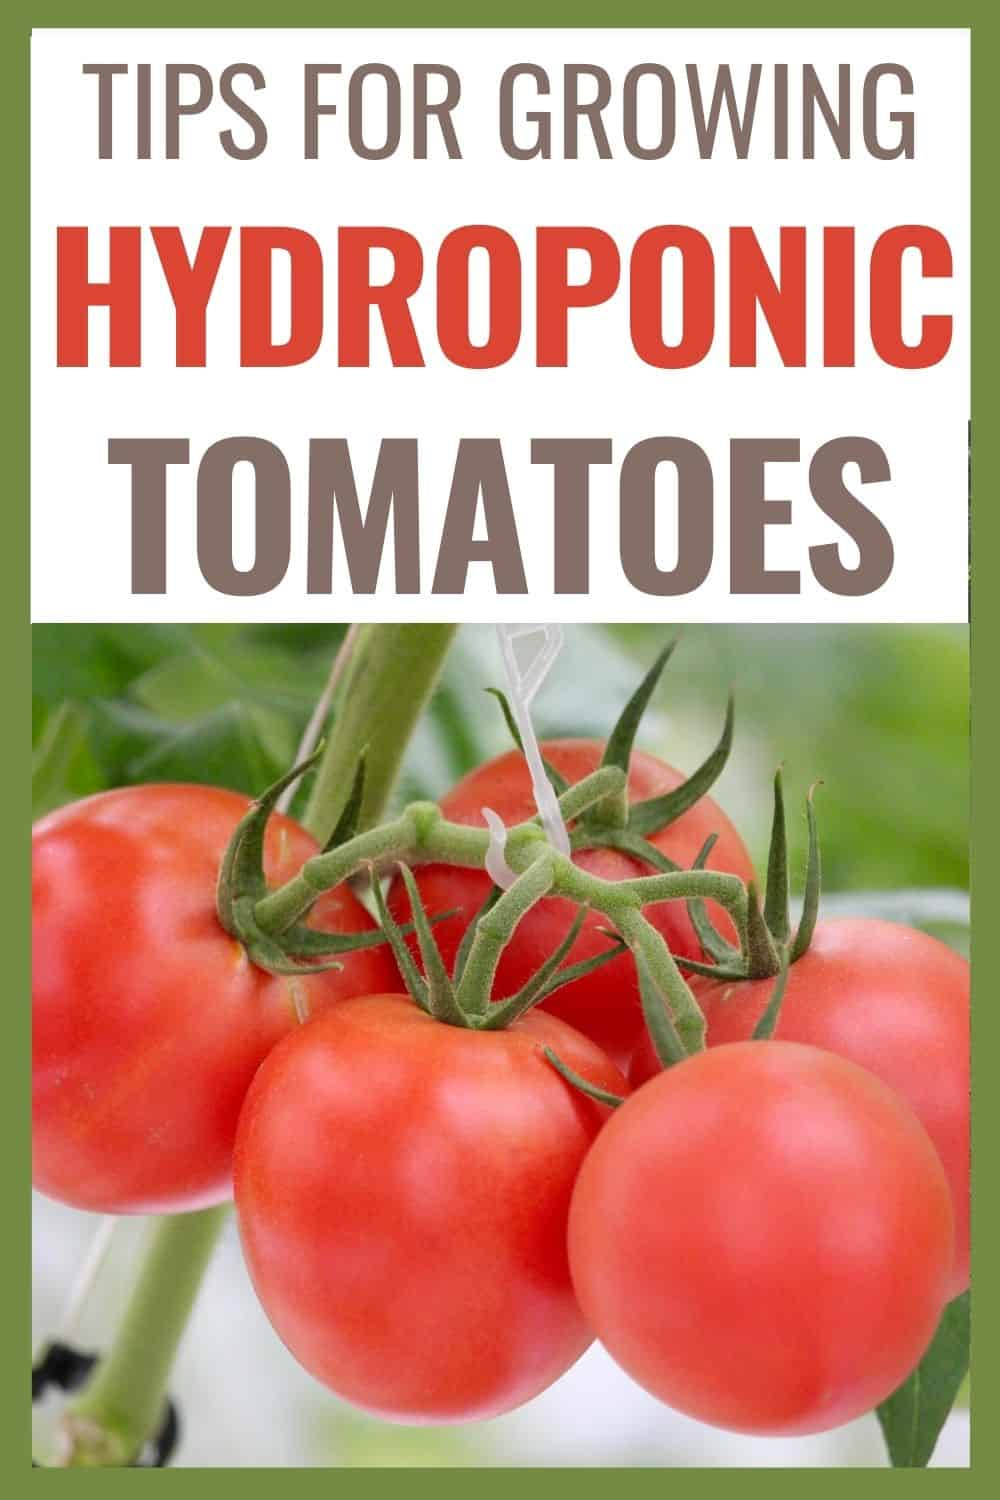 Tips for growing hydroponic tomatoes